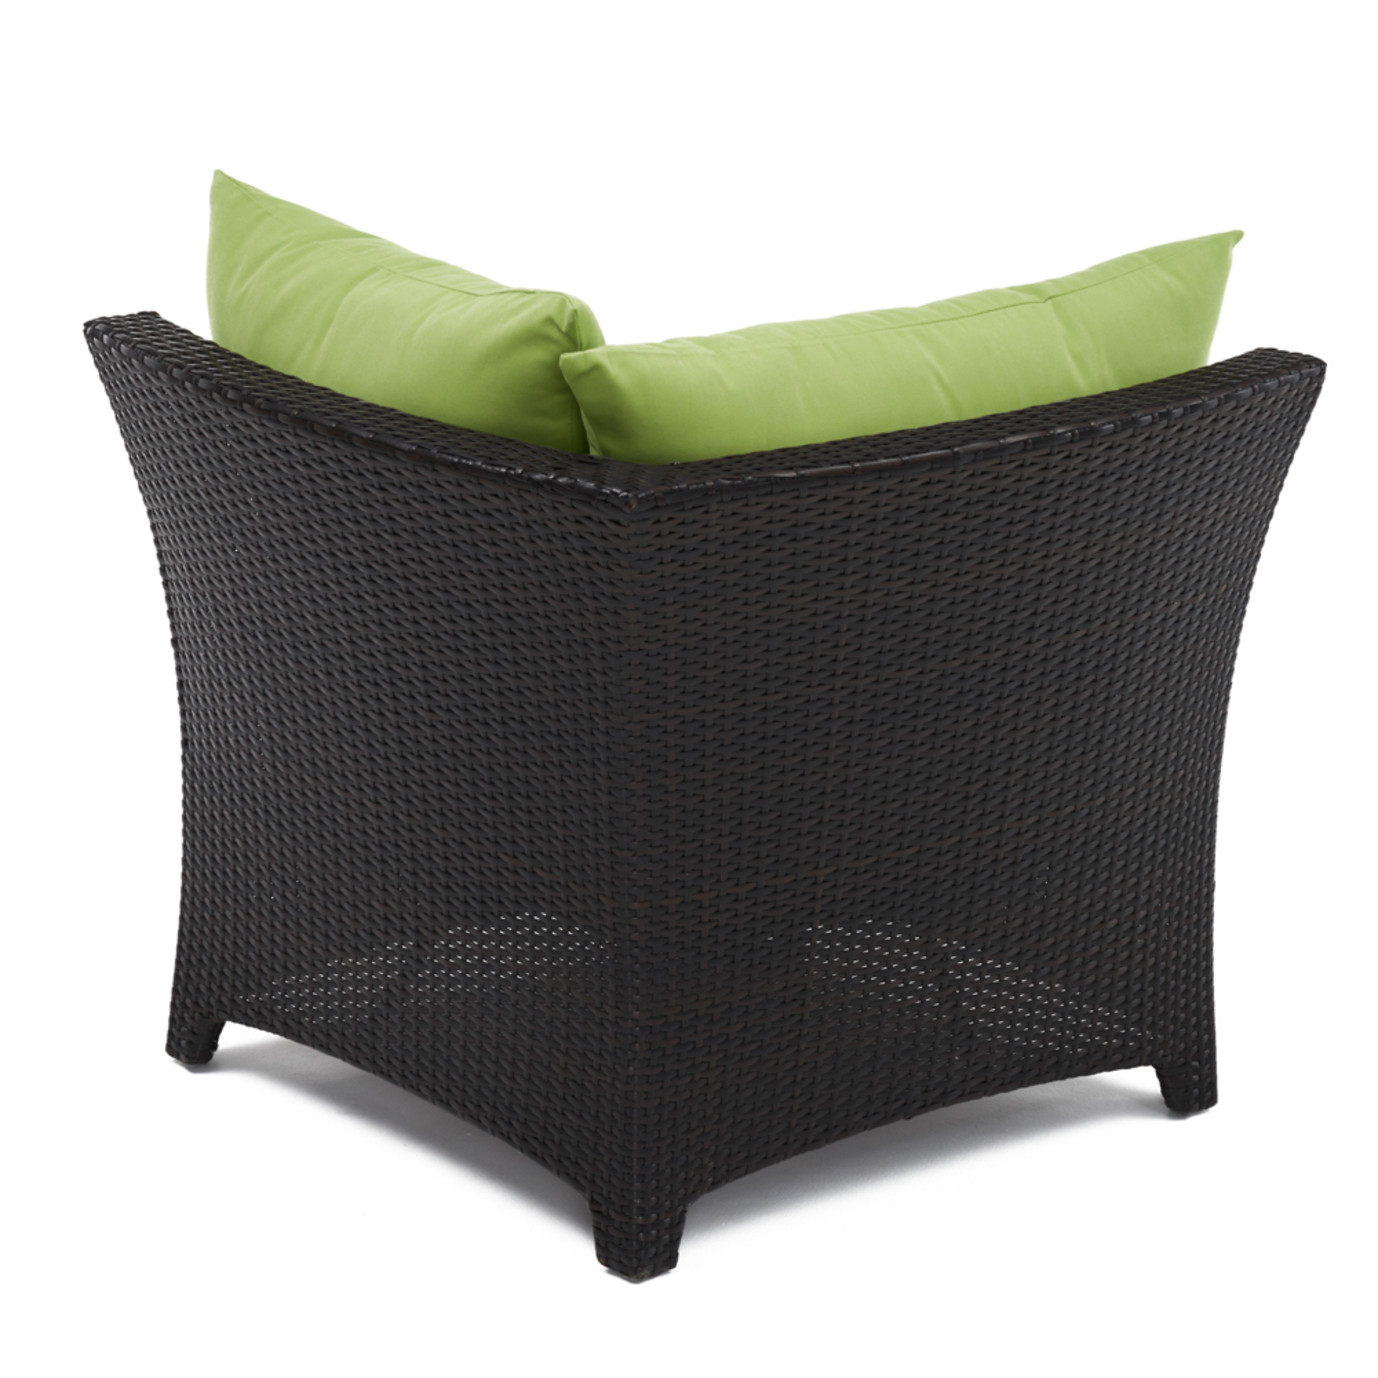 Deco™ 4pc Sectional and Table - Ginkgo Green